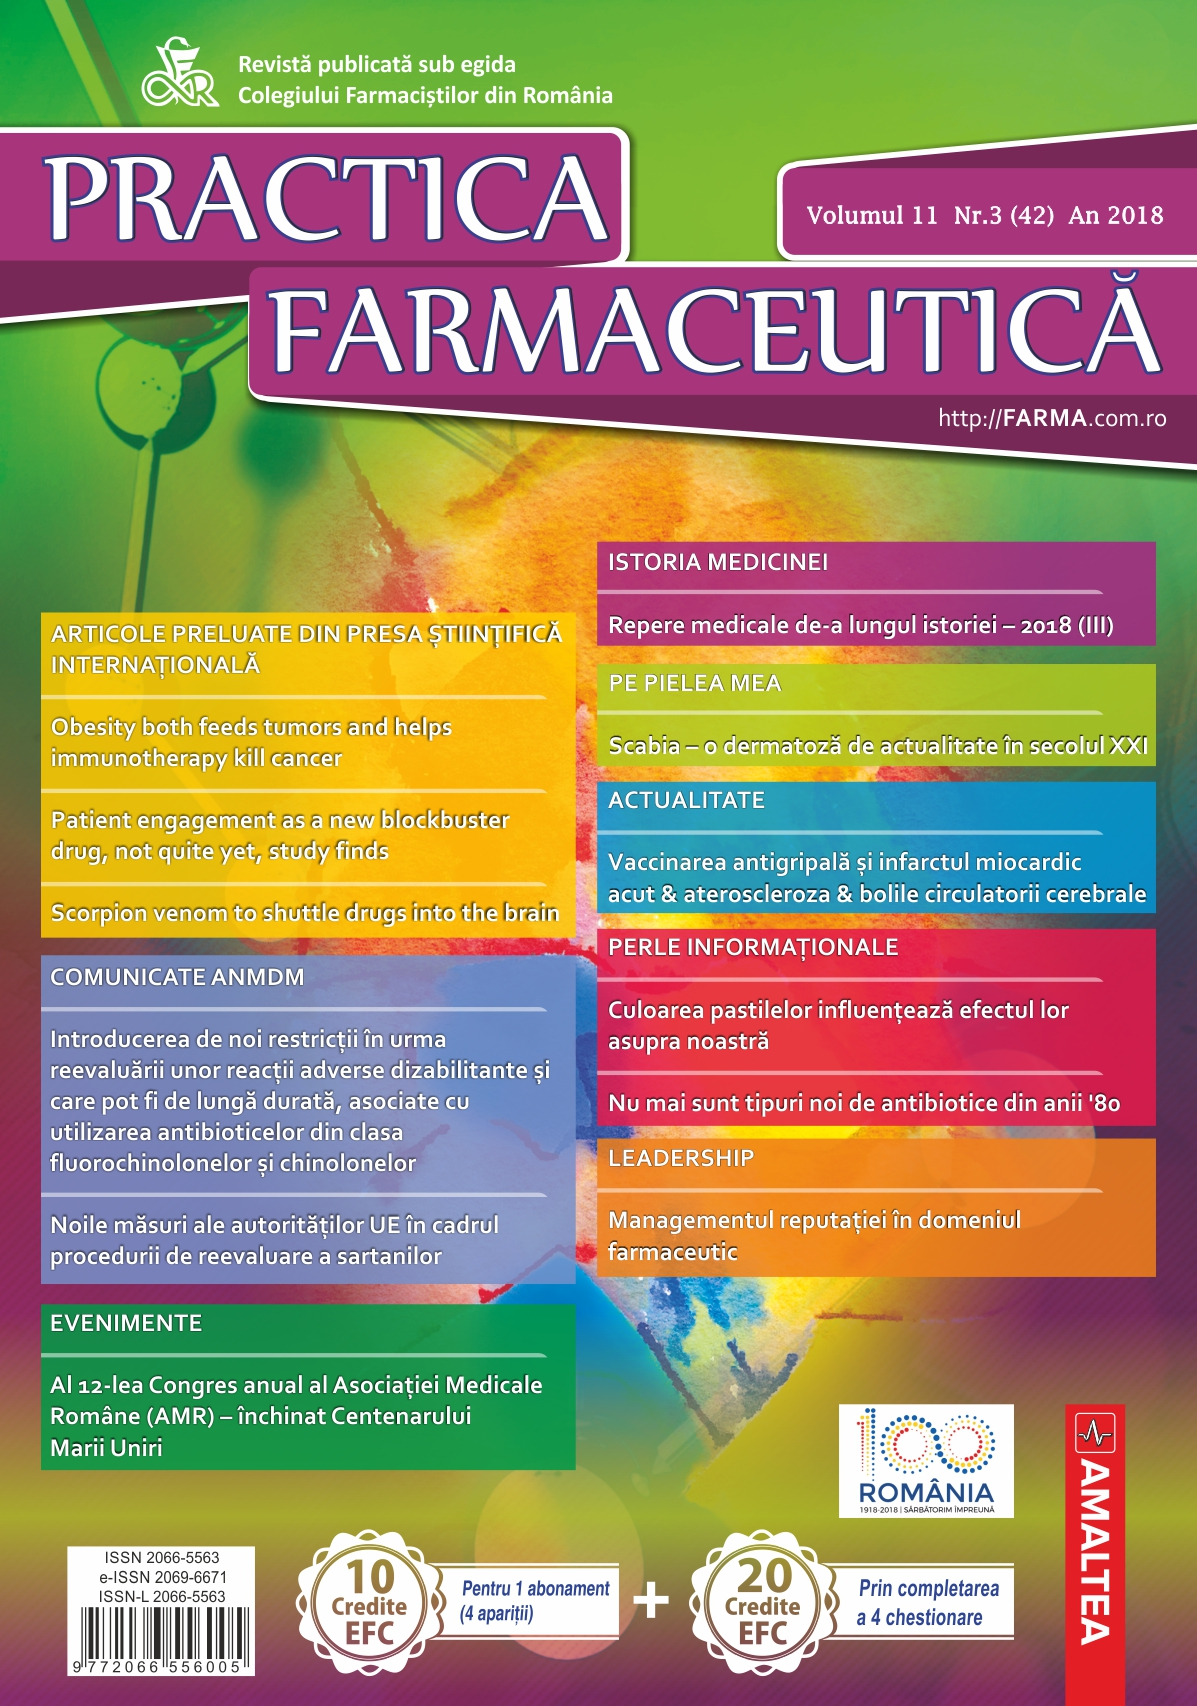 Revista Practica Farmaceutica, Vol. XI, No. 3 (42), 2018